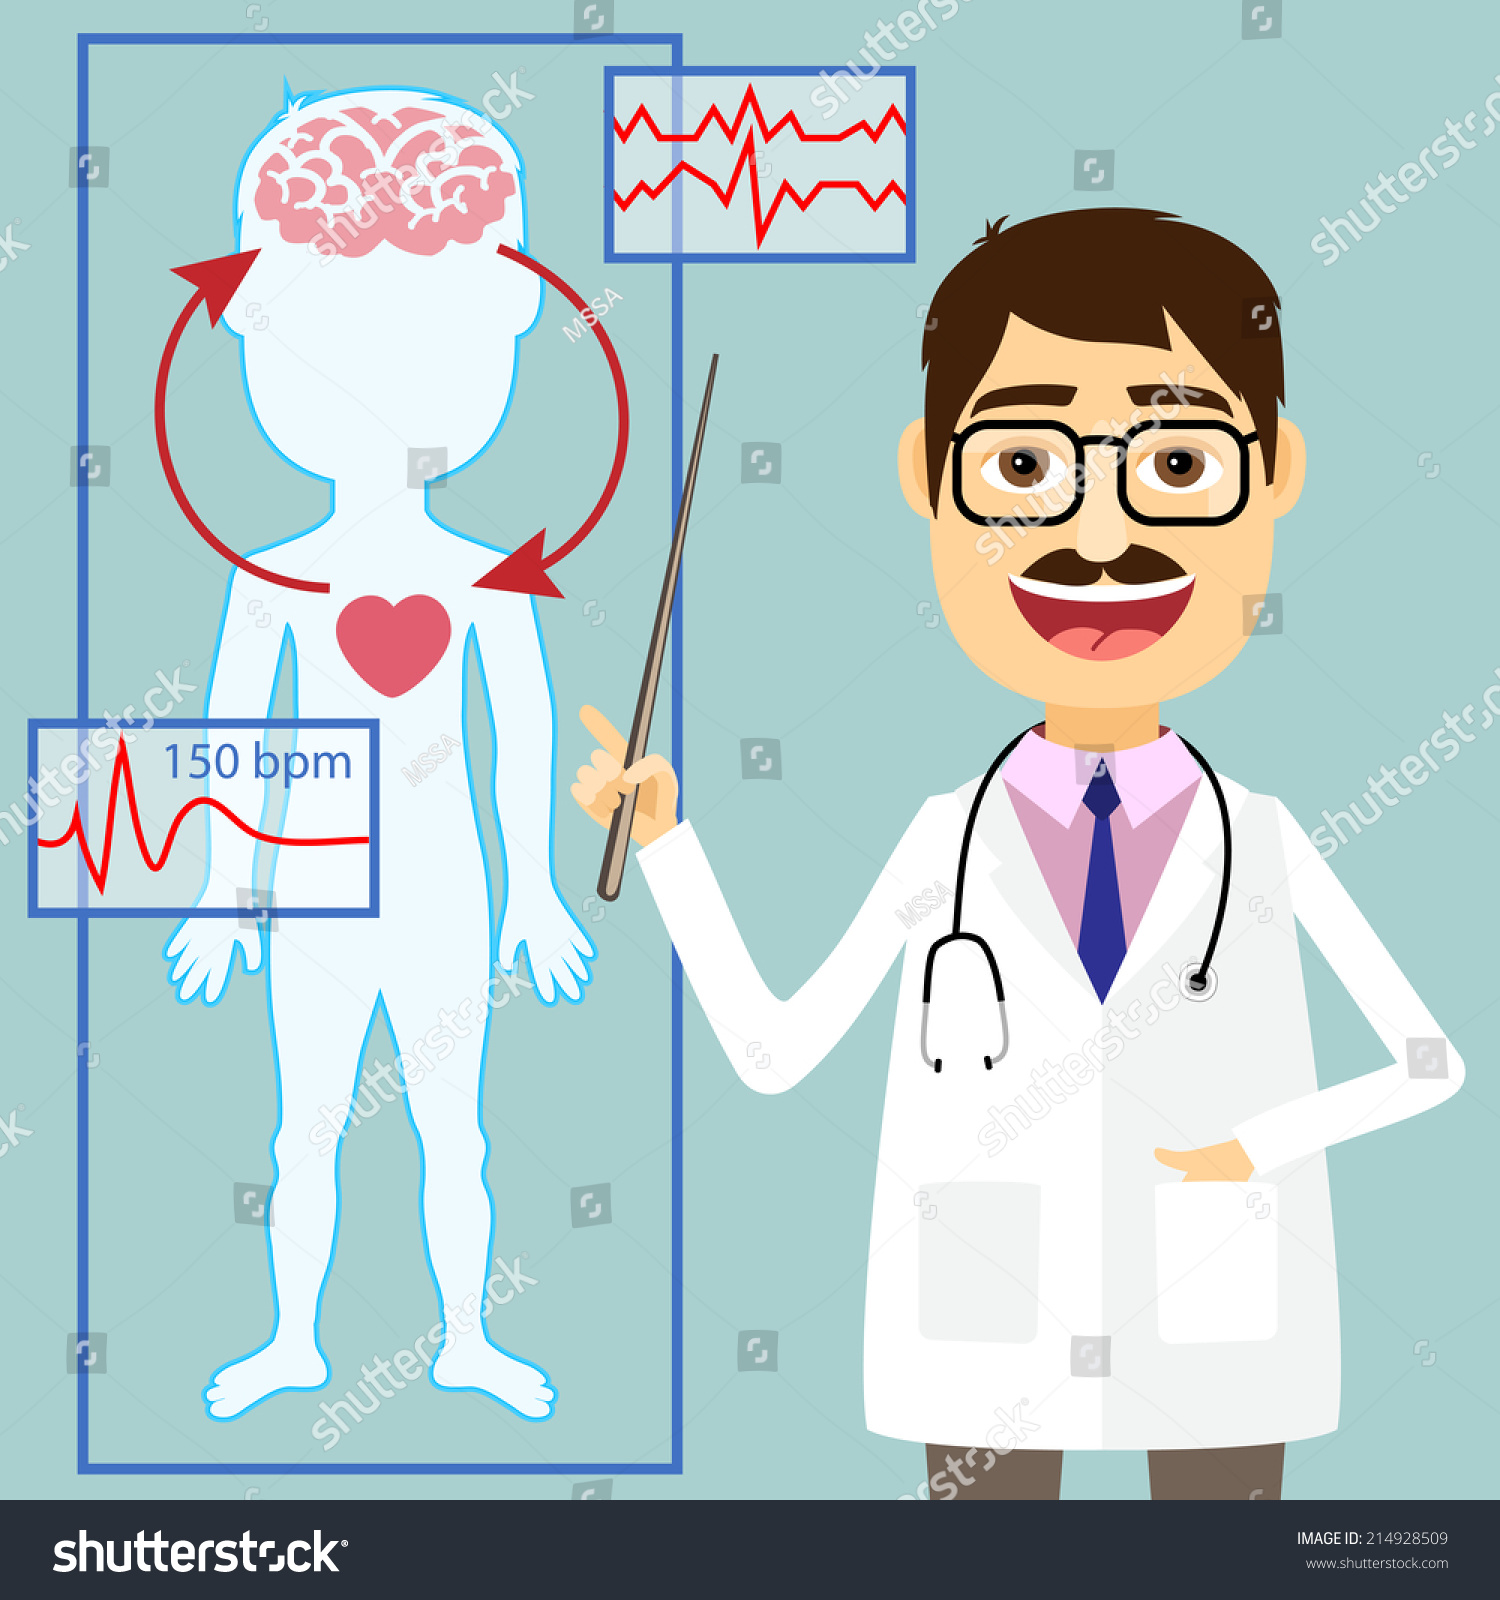 hight resolution of doctors says illustration of doctor pointing to diagram of blood pressure and circulatory system between